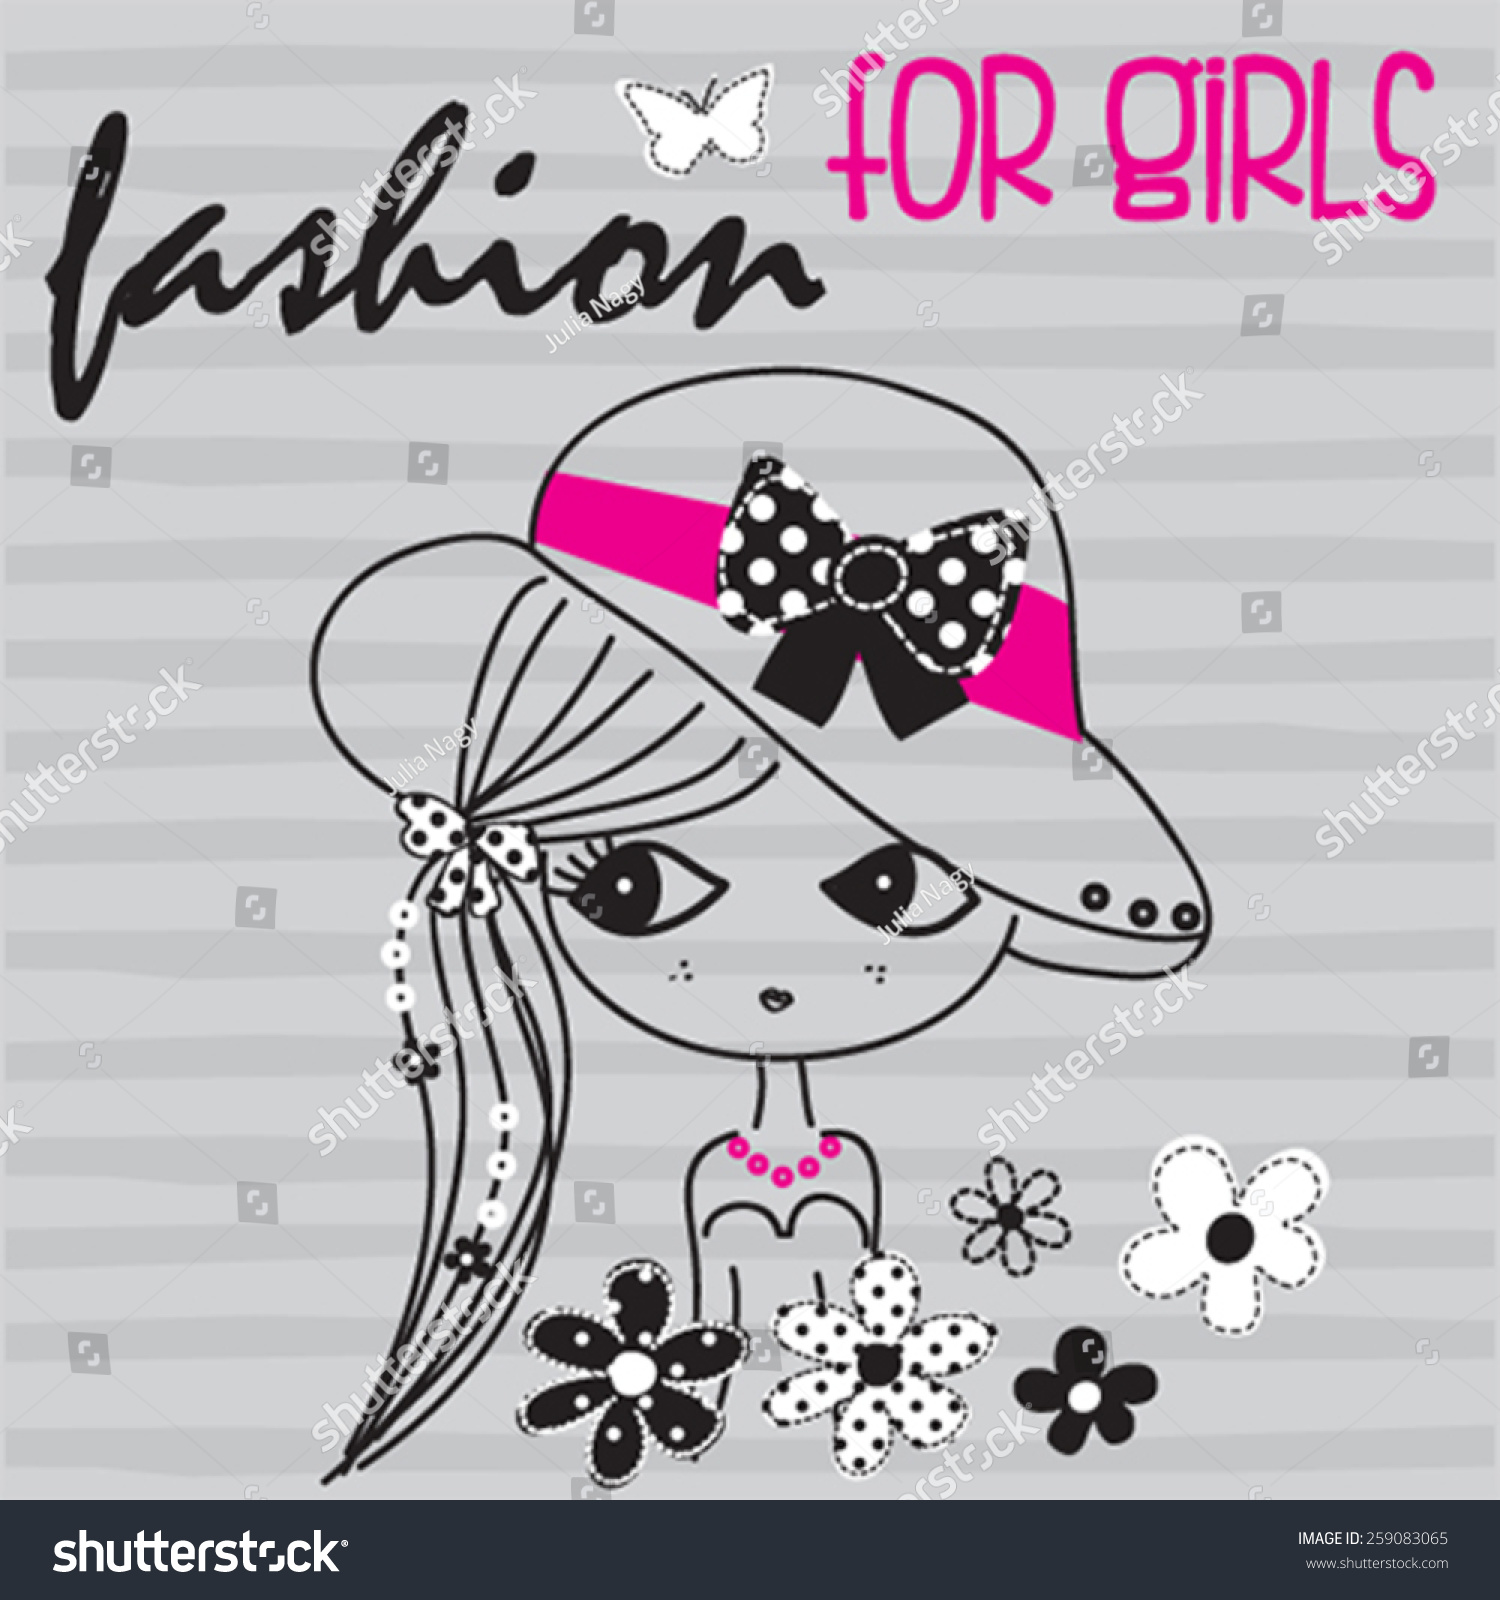 Design t shirt girl - Cute Girl With Flowers On Striped Background T Shirt Design Vector Illustration Stock Vector